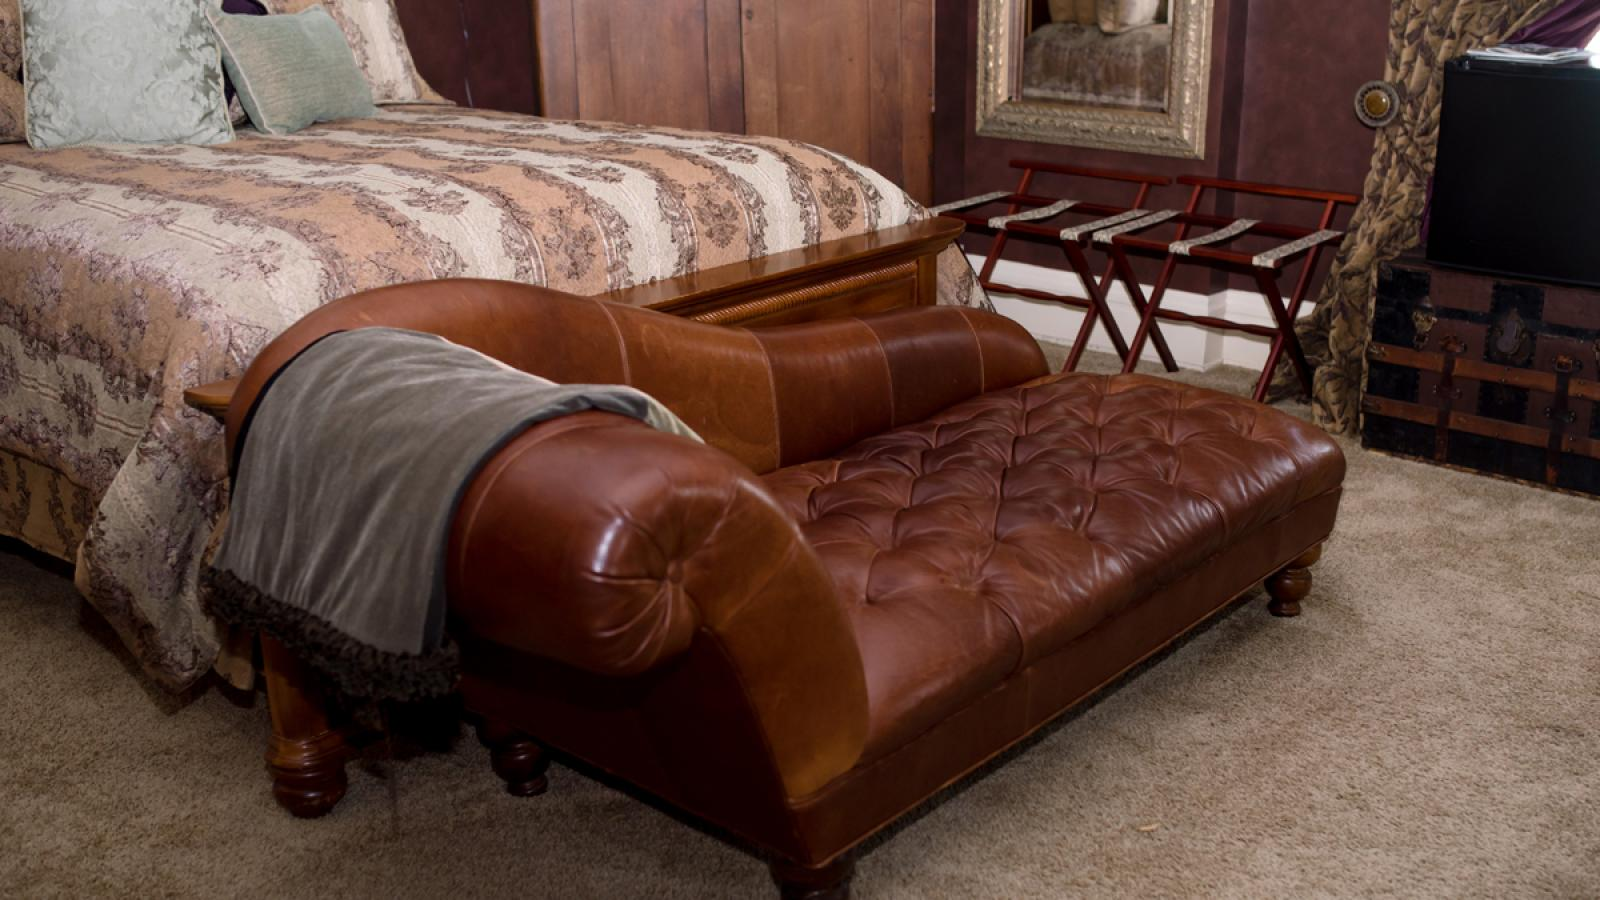 The Wild West Room chaise lounge chair